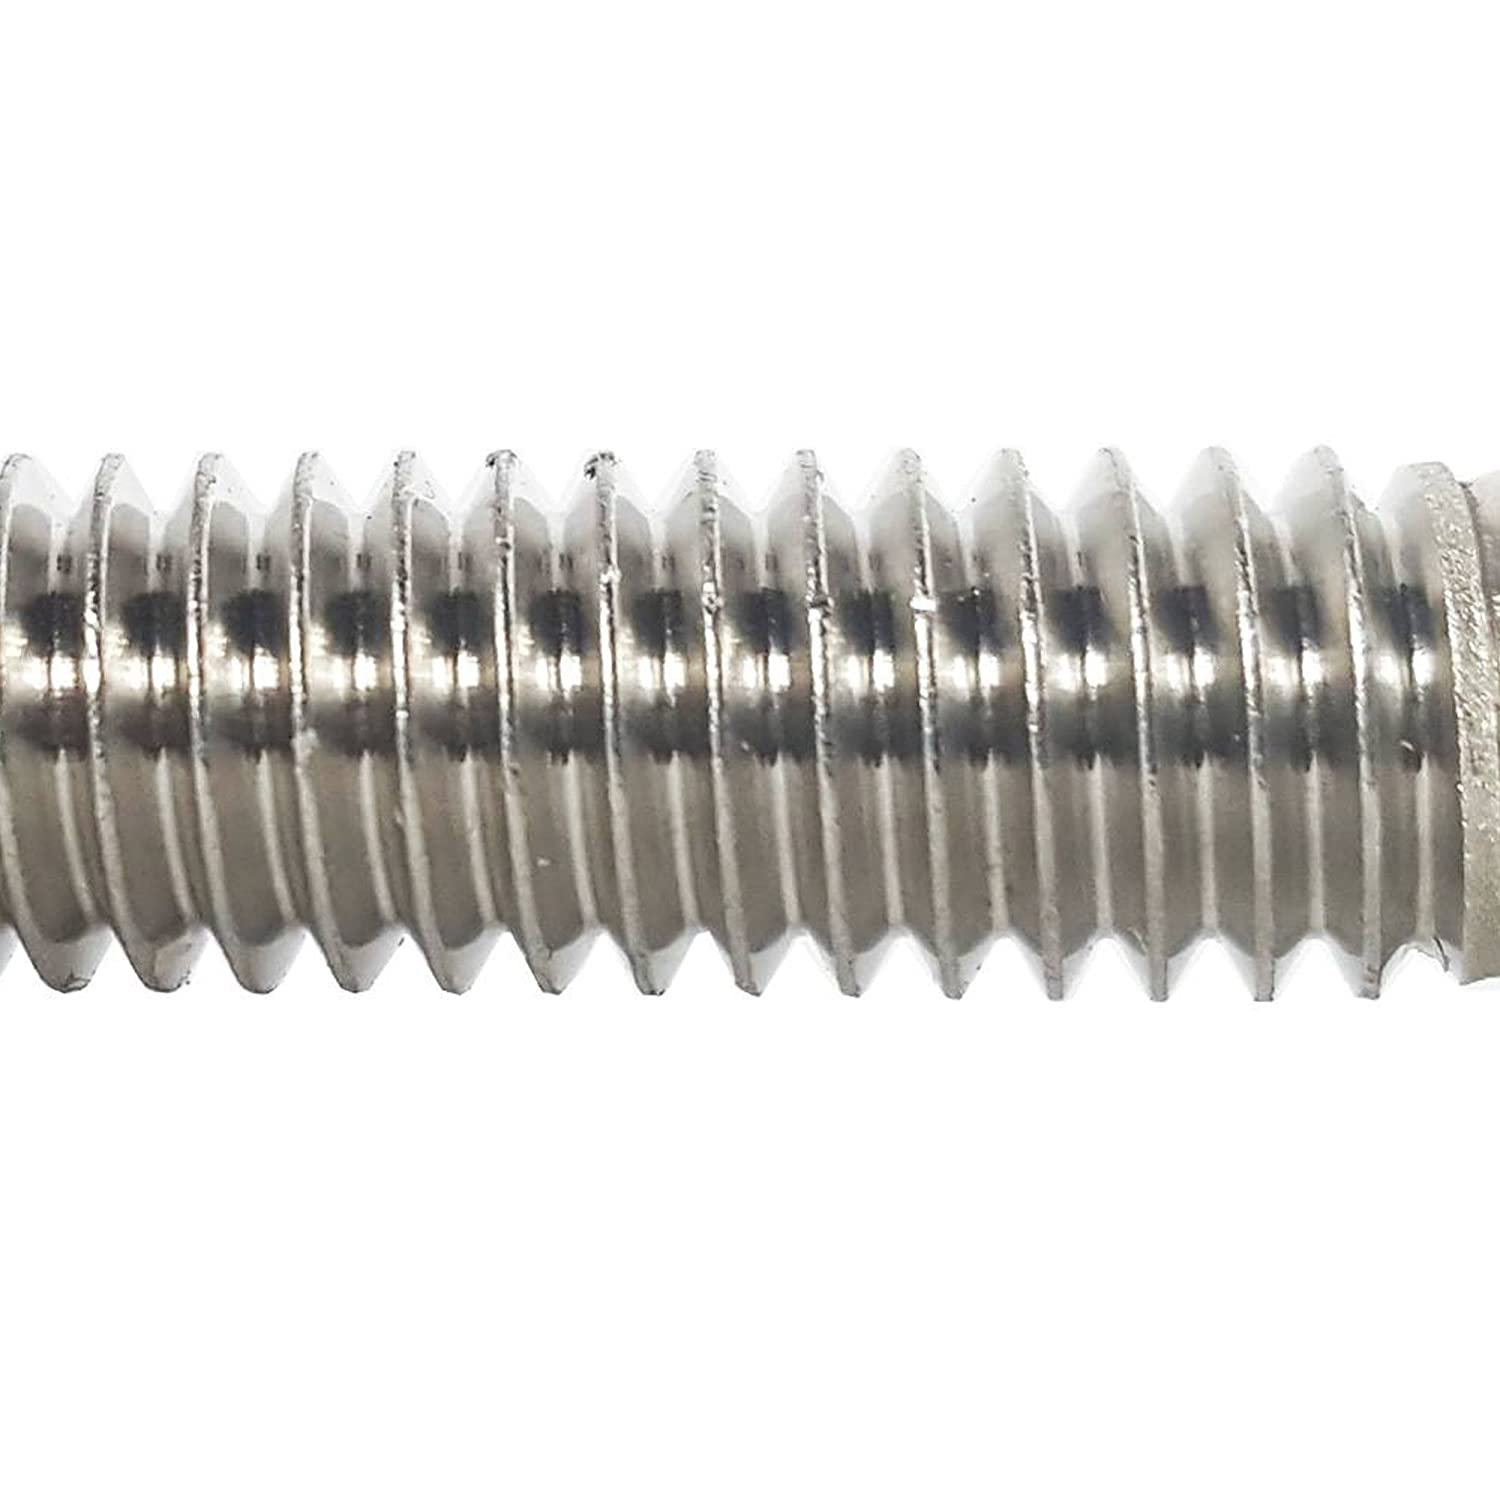 Full Thread Bright Finish Flat Point 5//16-18 x 2-1//2 Hex Head Cap Screw Bolts Stainless Steel 18-8 External Hex Drive Quantity 10 By Fastenere